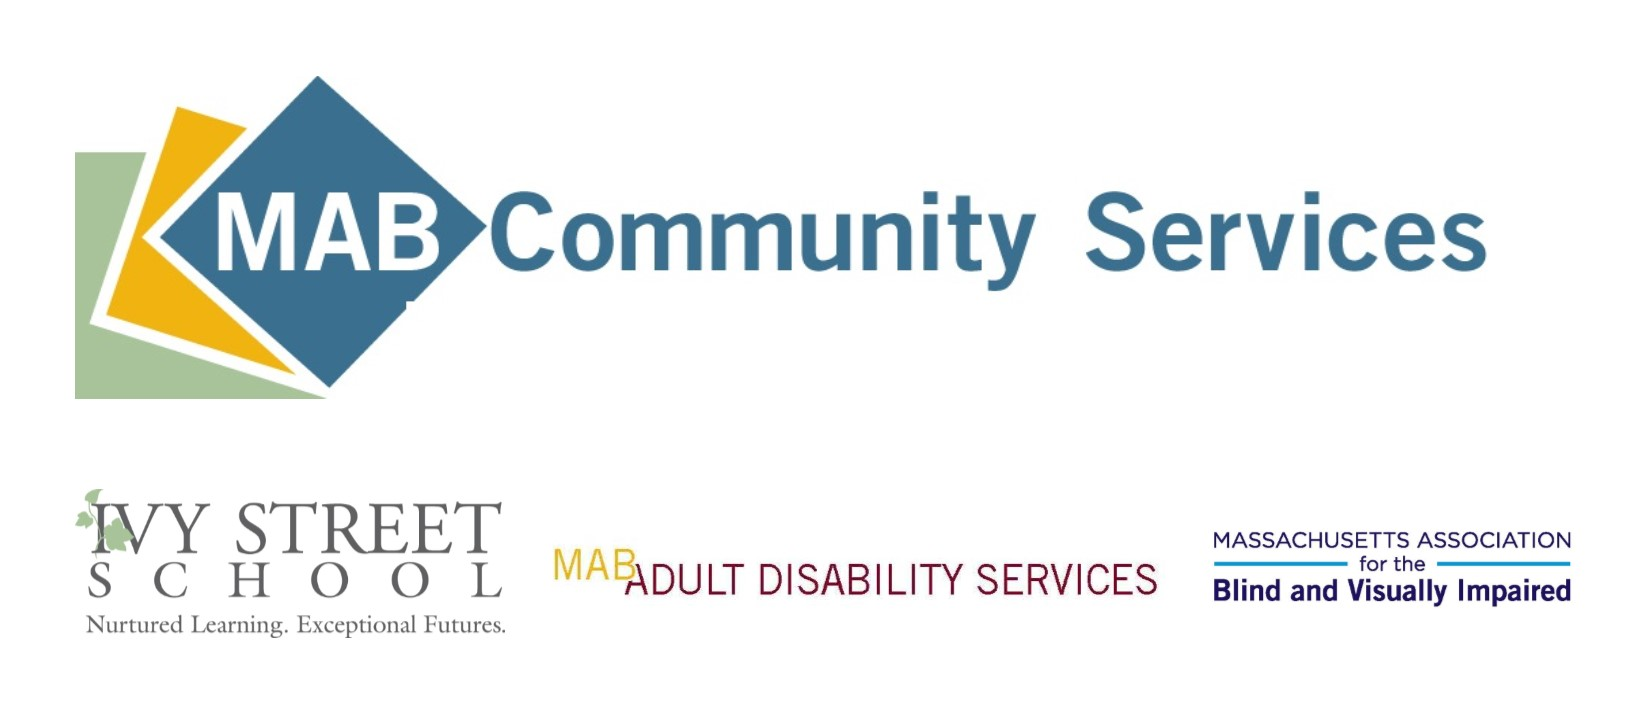 Logos for MAB Community Services and its divisions